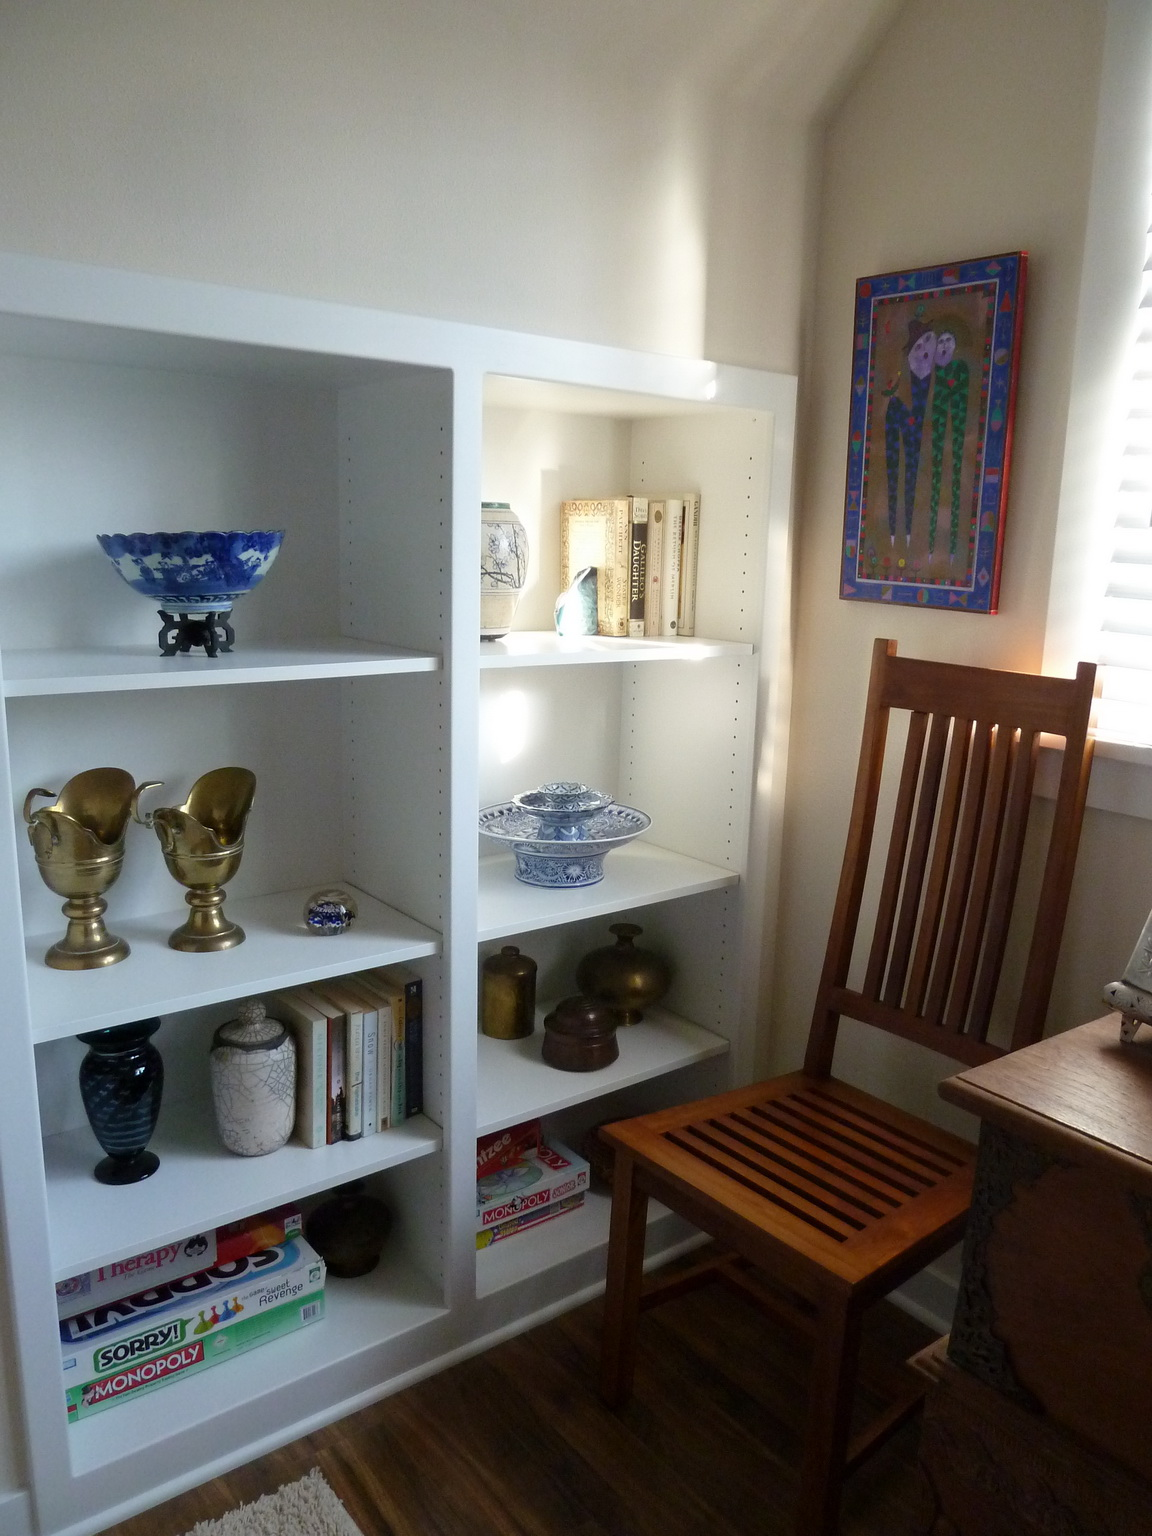 206 NW 8th Street, Corvallis, Oregon-Carriage House Bedroom Shelving